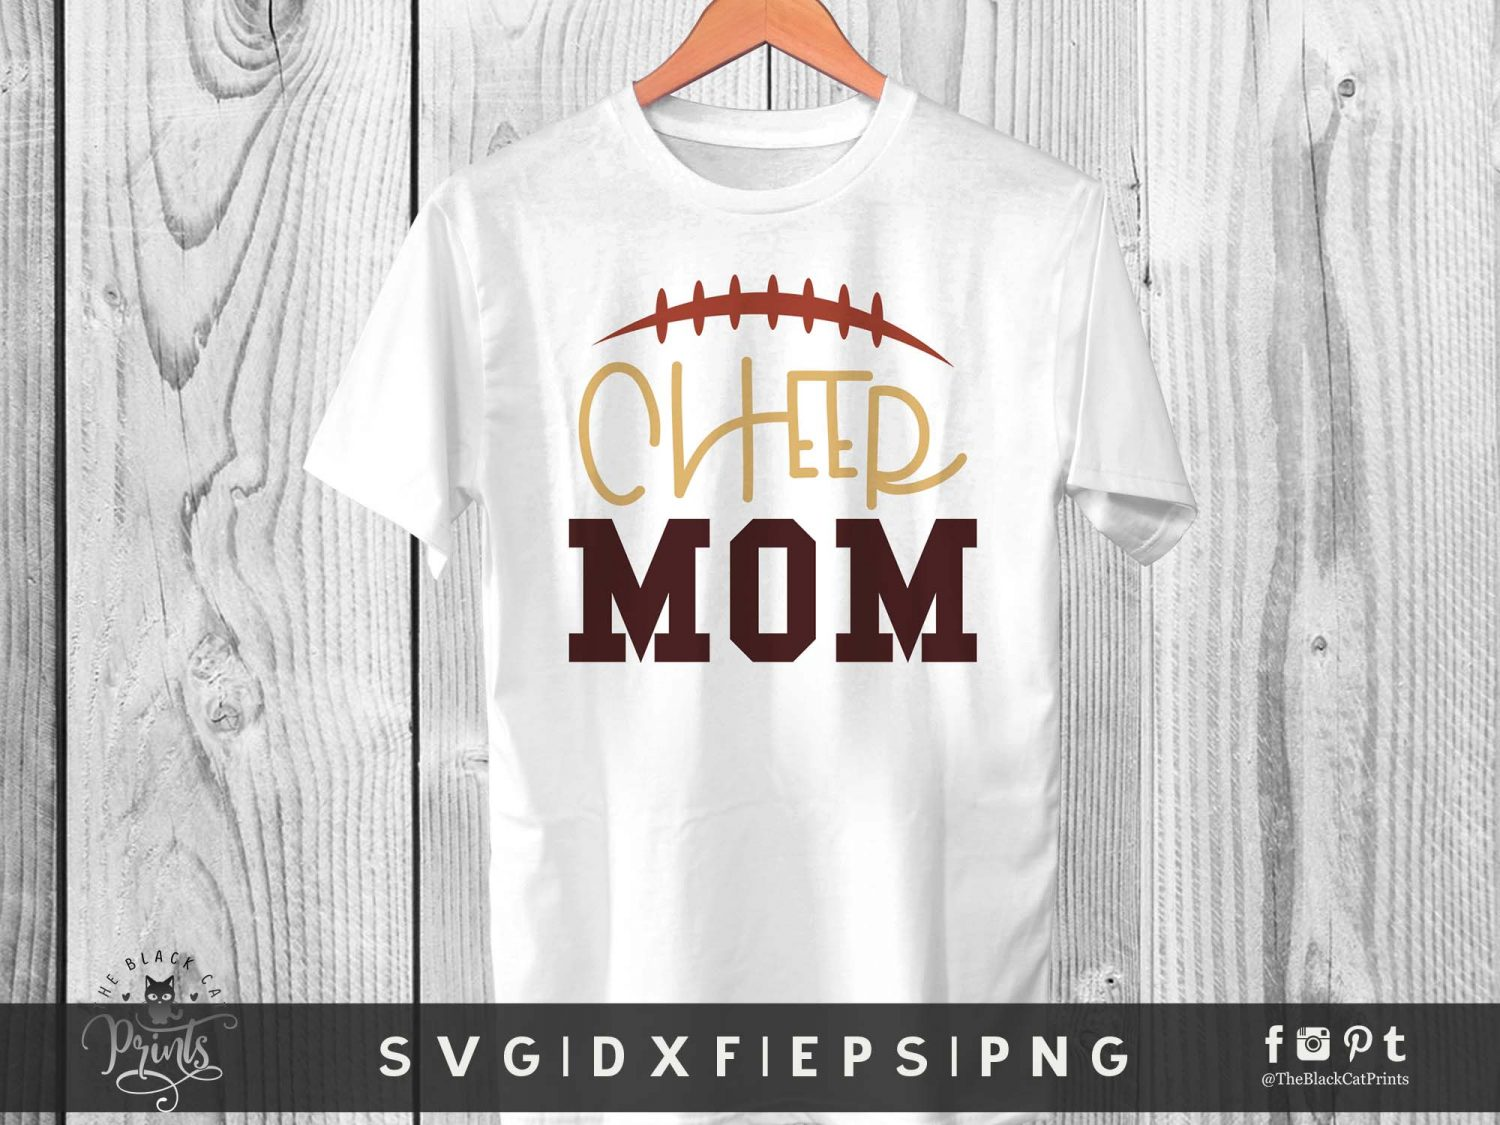 Cheer Mom Svg Dxf Png Eps 2 Theblackcatprints